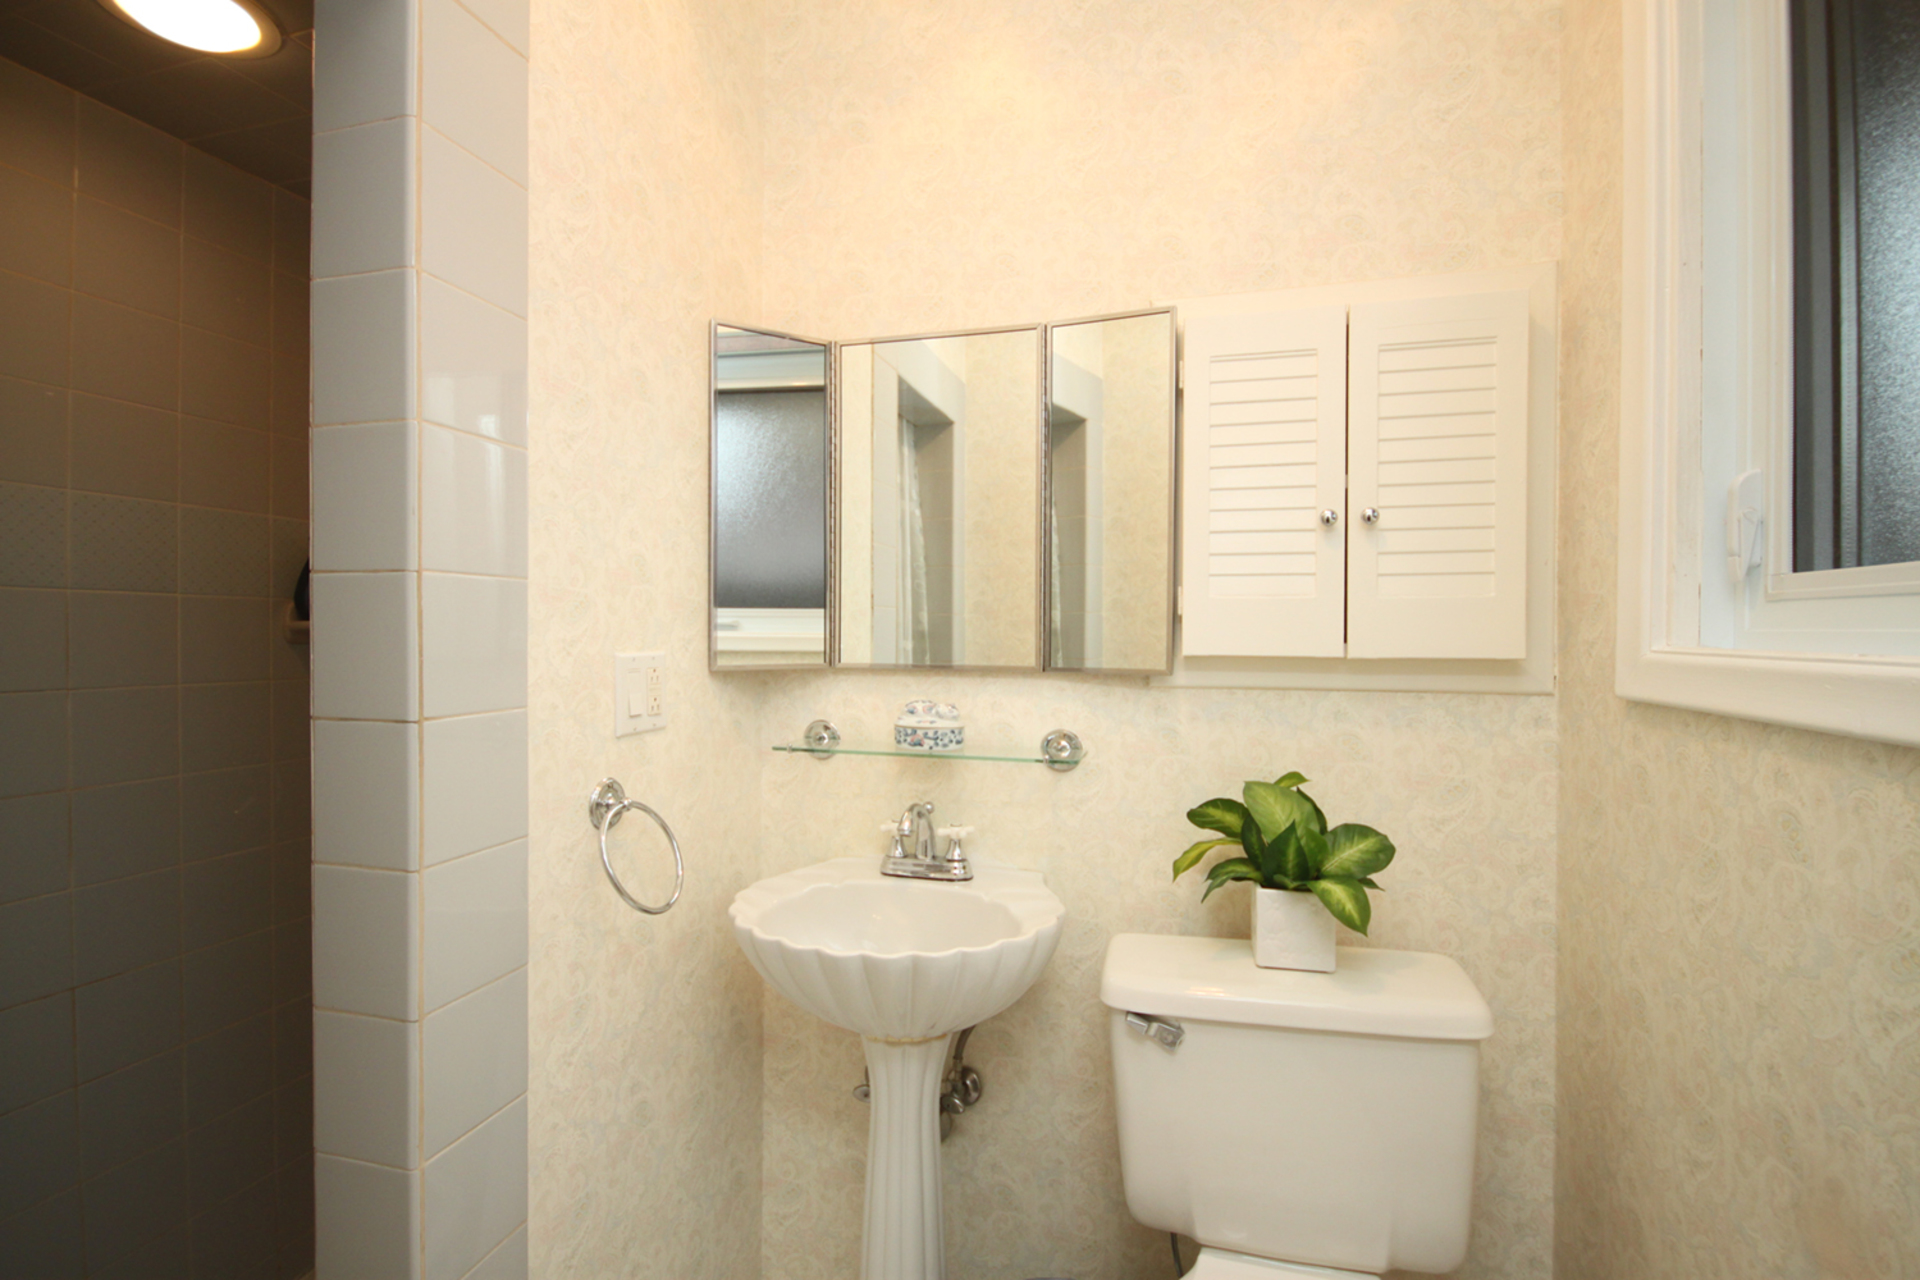 3 Piece Ensuite Bathroom at 137 Underhill Drive, Parkwoods-Donalda, Toronto